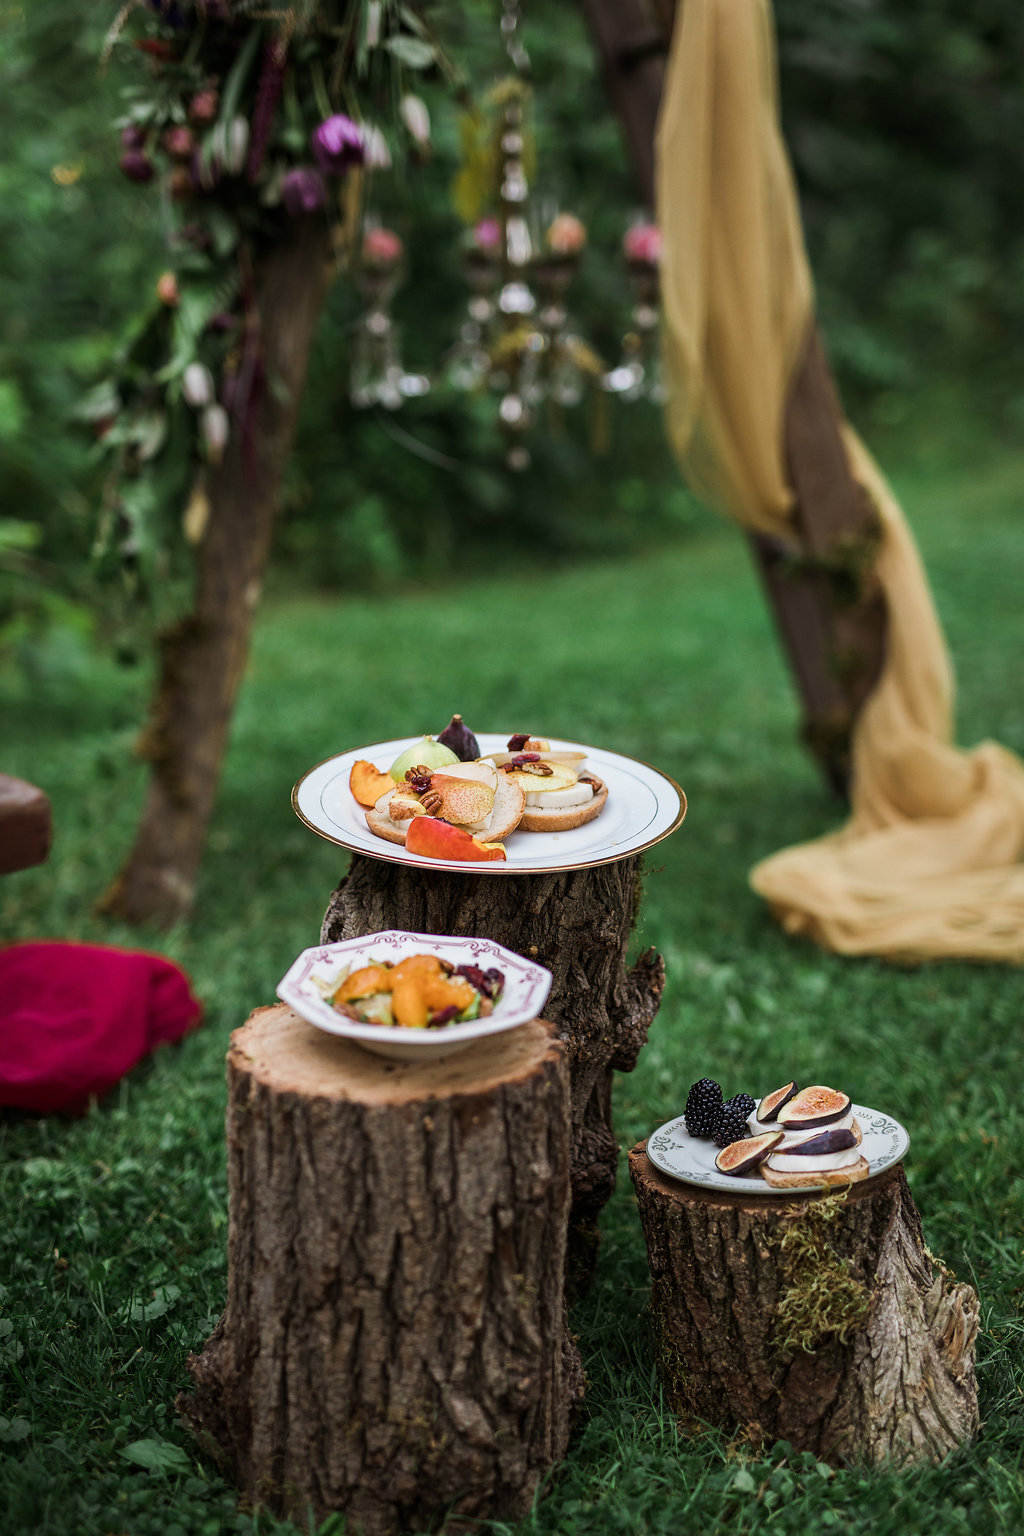 wedding catering - photo by Katie Ricard Photography http://ruffledblog.com/dramatic-woodland-wedding-inspiration-with-burgundy-accents